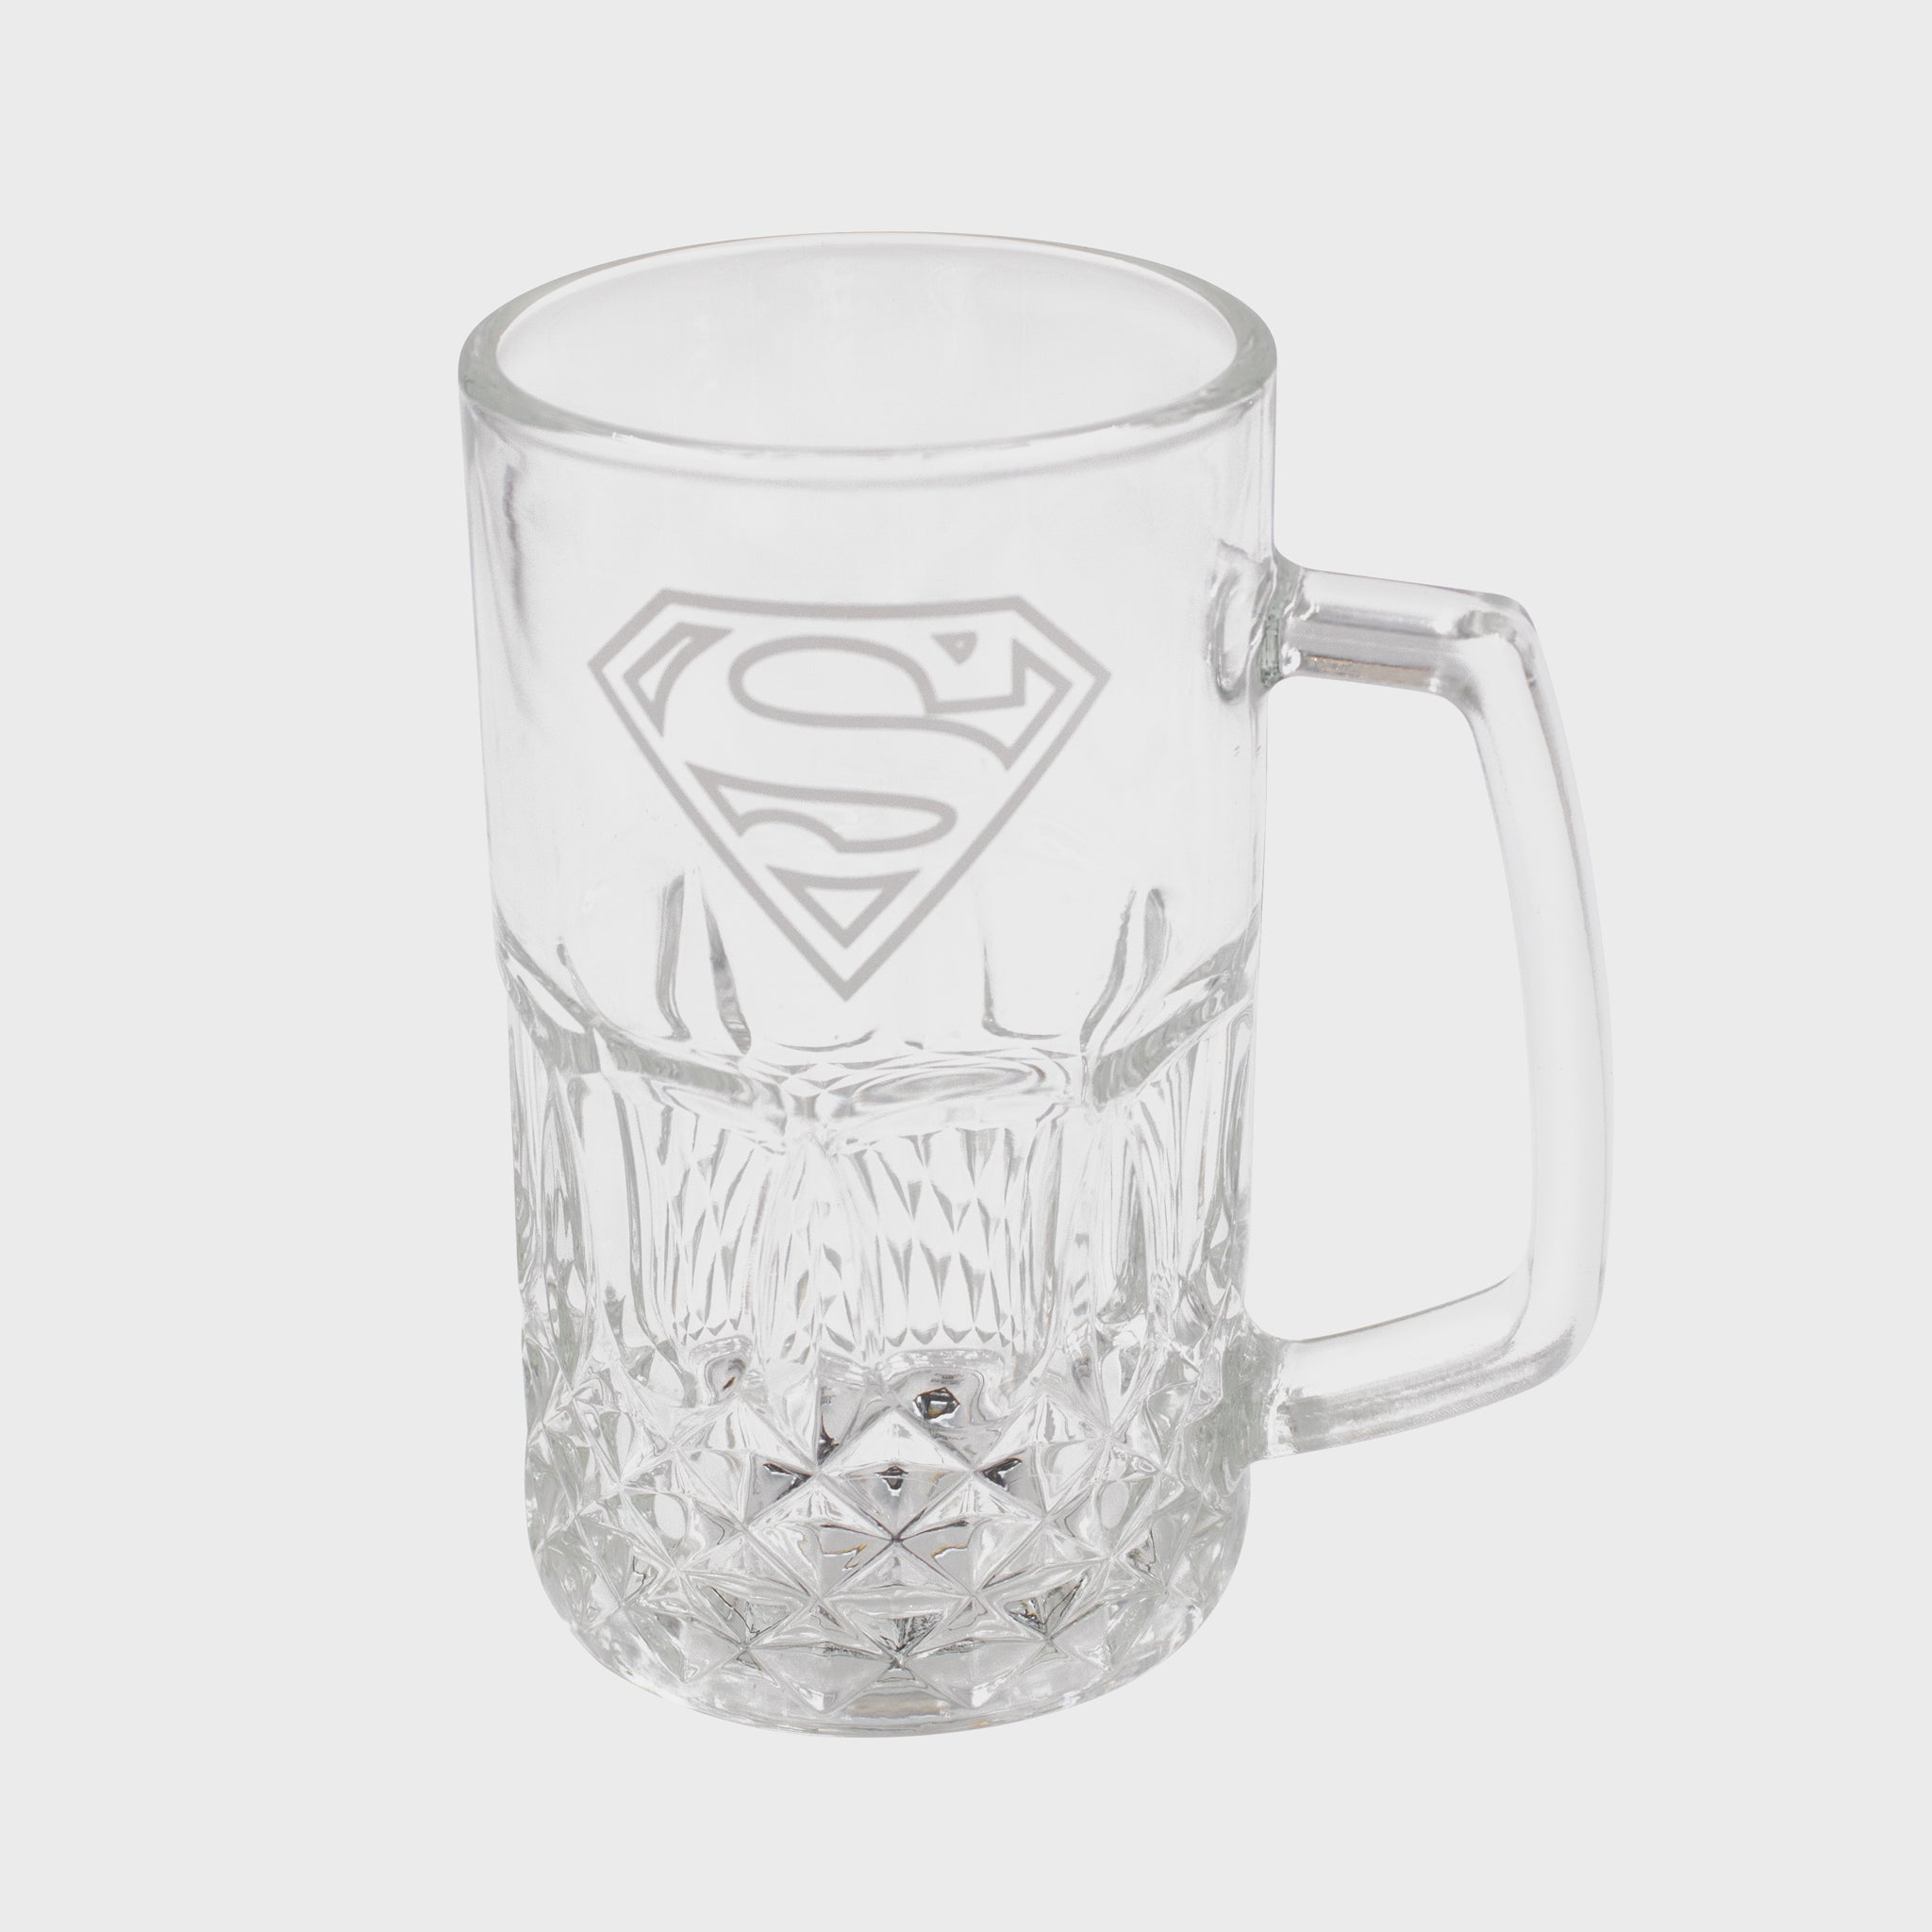 world's finest the collection subscription box exclusive collectible superman fortress of solitude culturefly dc comics superhero glass mug kitchenware drinkware